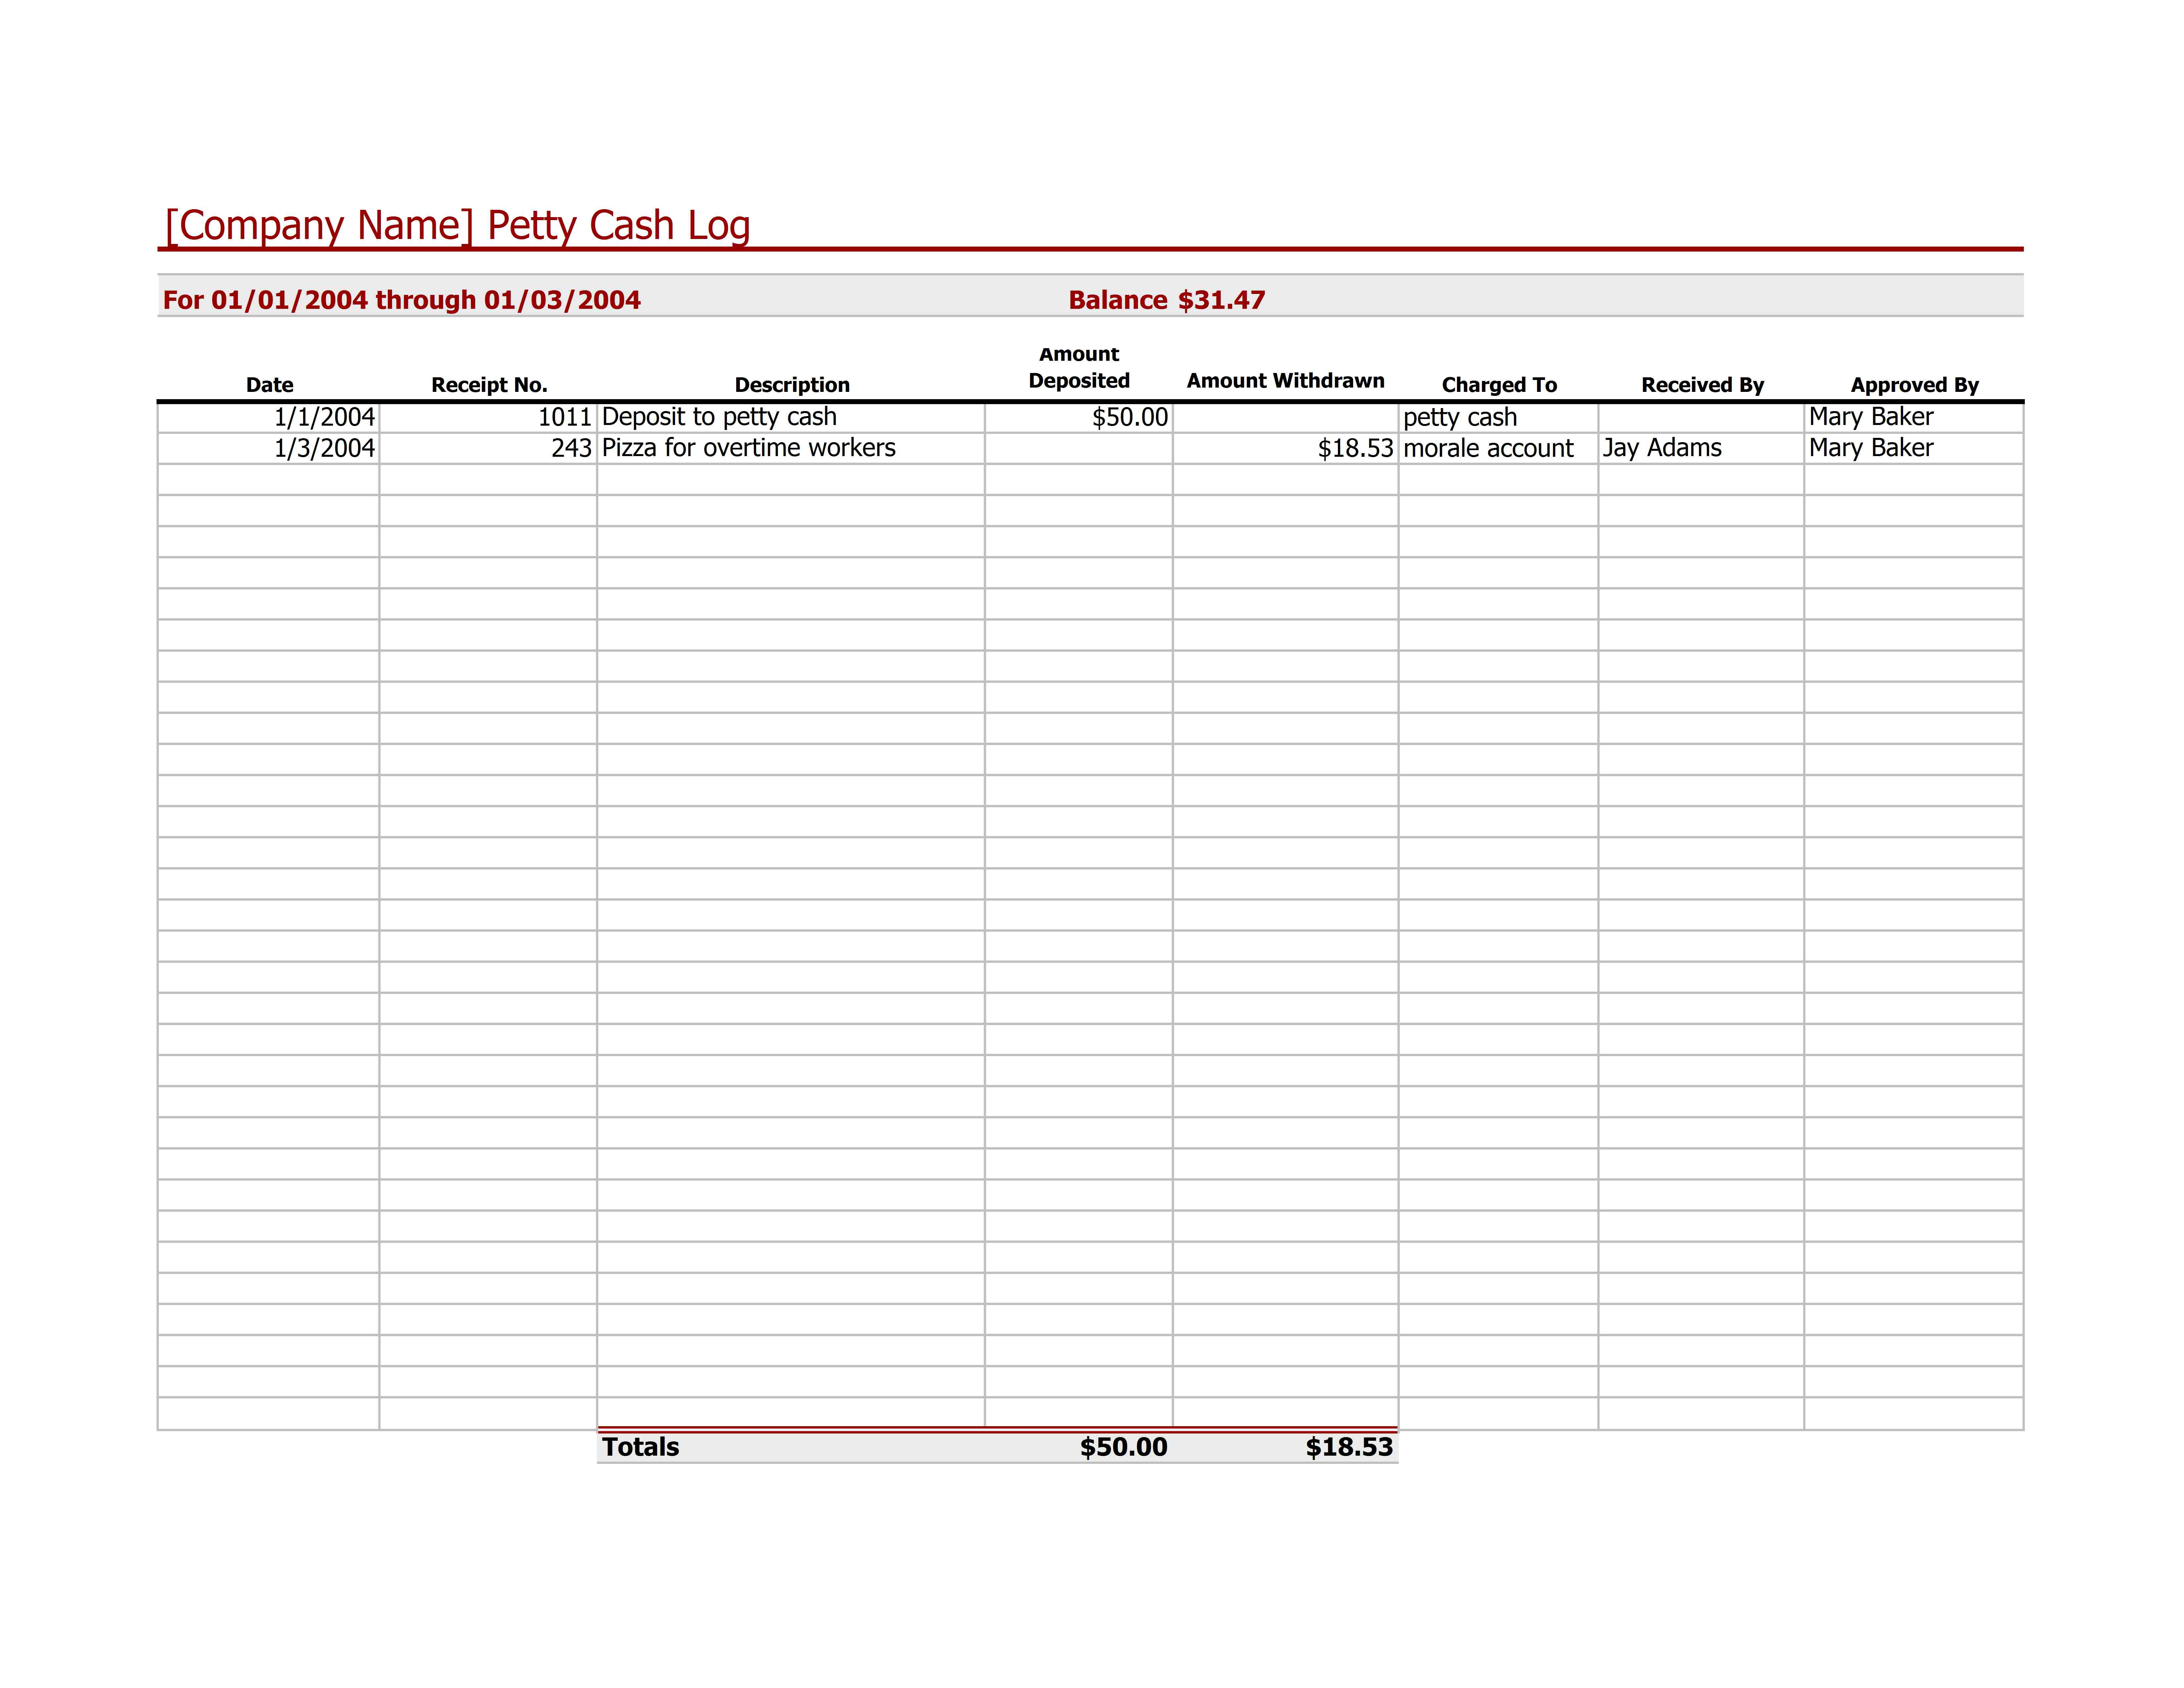 Excel Accounting Templates Free Accounting Spreadsheet Templates Accounting Spreadshee Accounting Spreadshee Accounting Spreadsheets For Small Business